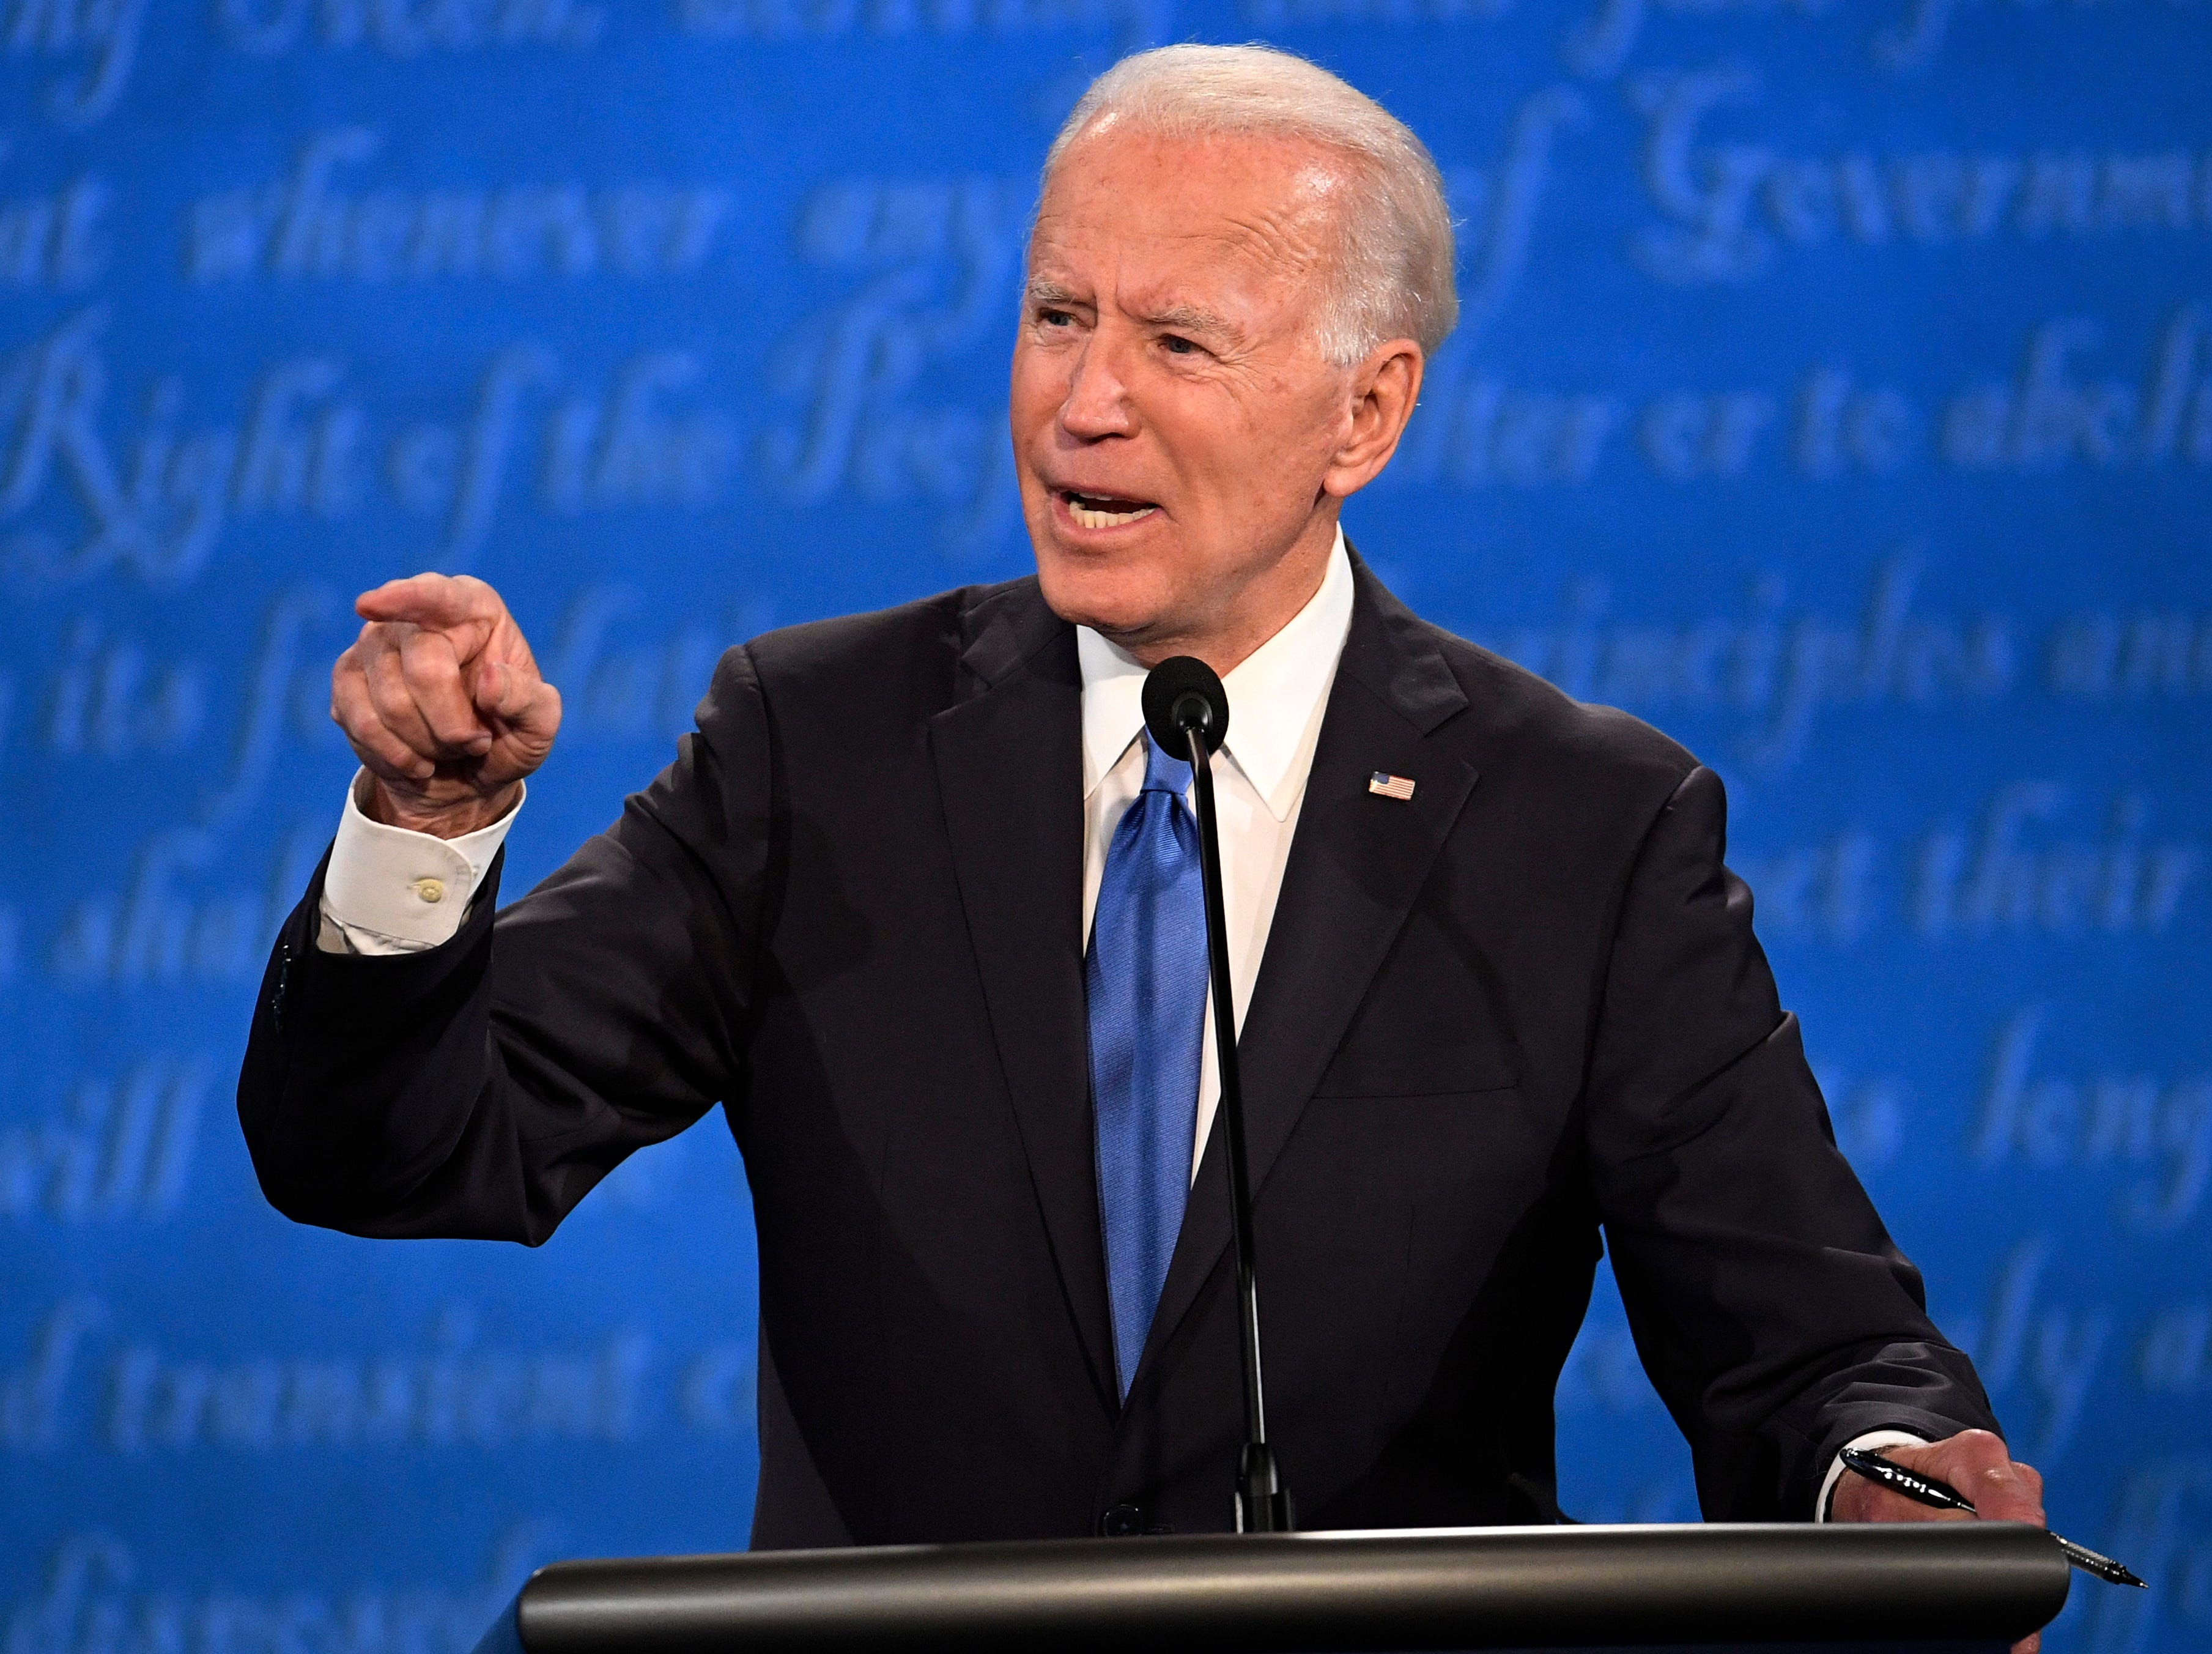 Joe Biden economic plan: What Biden means for the economy, your finances and another COVID-19 stimulus package